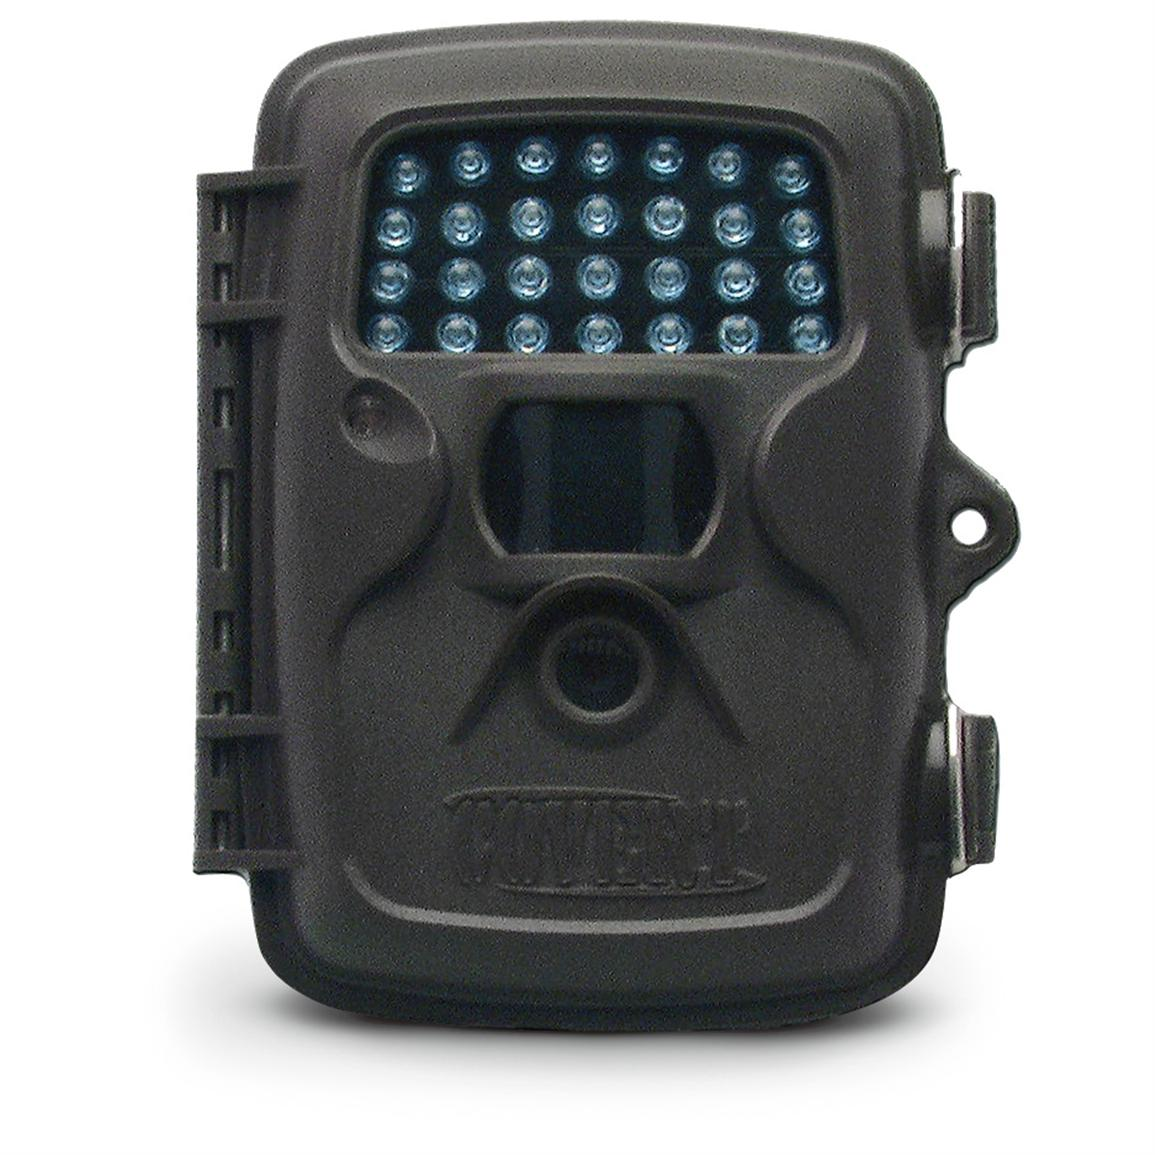 Covert Scouting Cameras™ MP-E5 Infrared Trail Camera